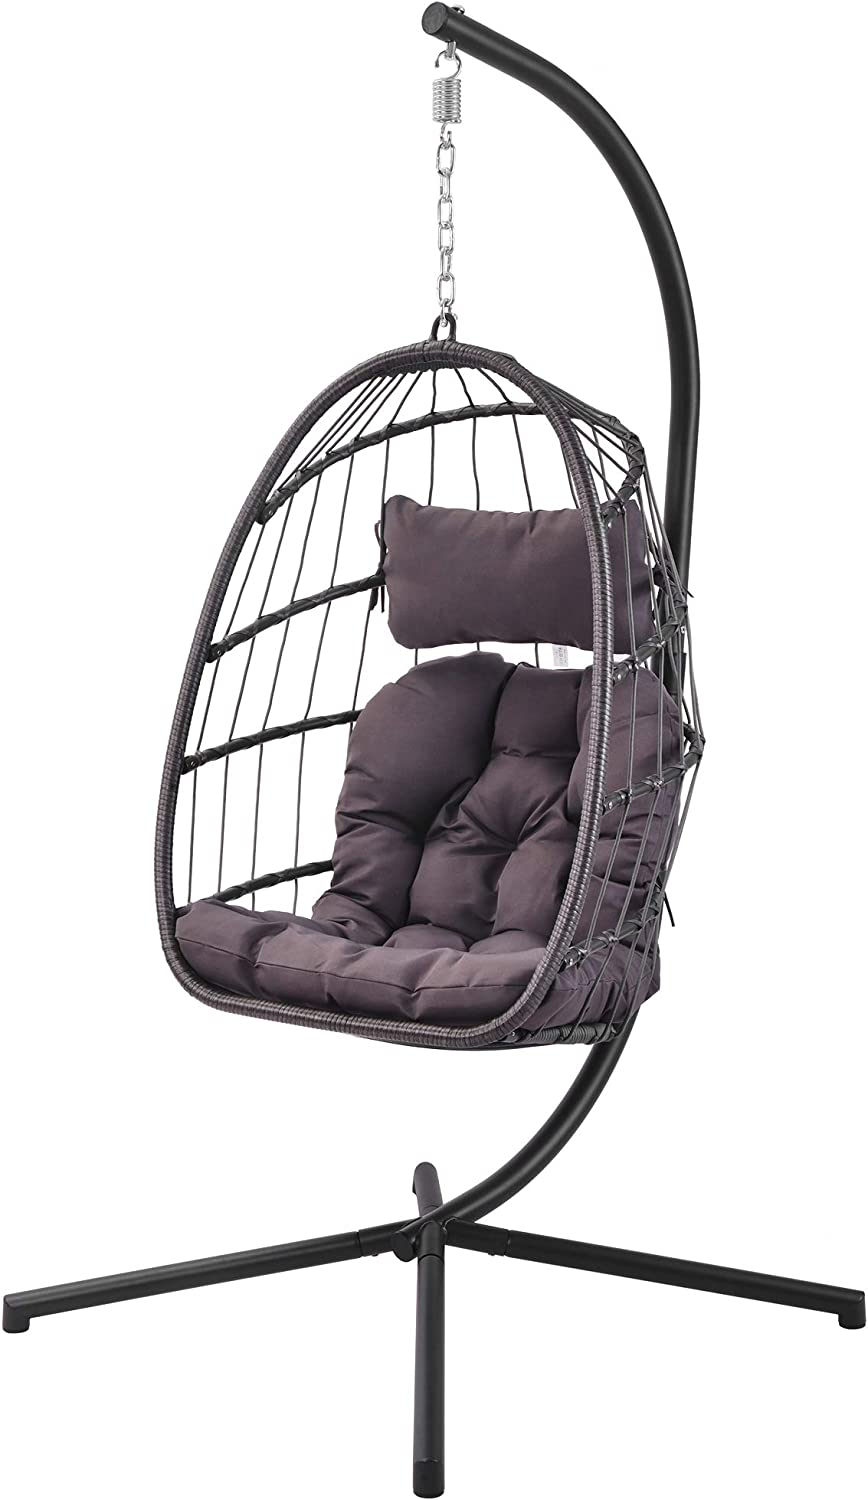 Mid Century Rattan Chair, Amazon Com Patio Hanging Egg Chair With Stand Swing Chair Basket Swinging Chair Porch Chaise Lounge Chair Rattan Wicker Hammock Chair With Deep Cushion For Indoor Outdoor Home Bedroom Backyard Balcony Brown Furniture Decor